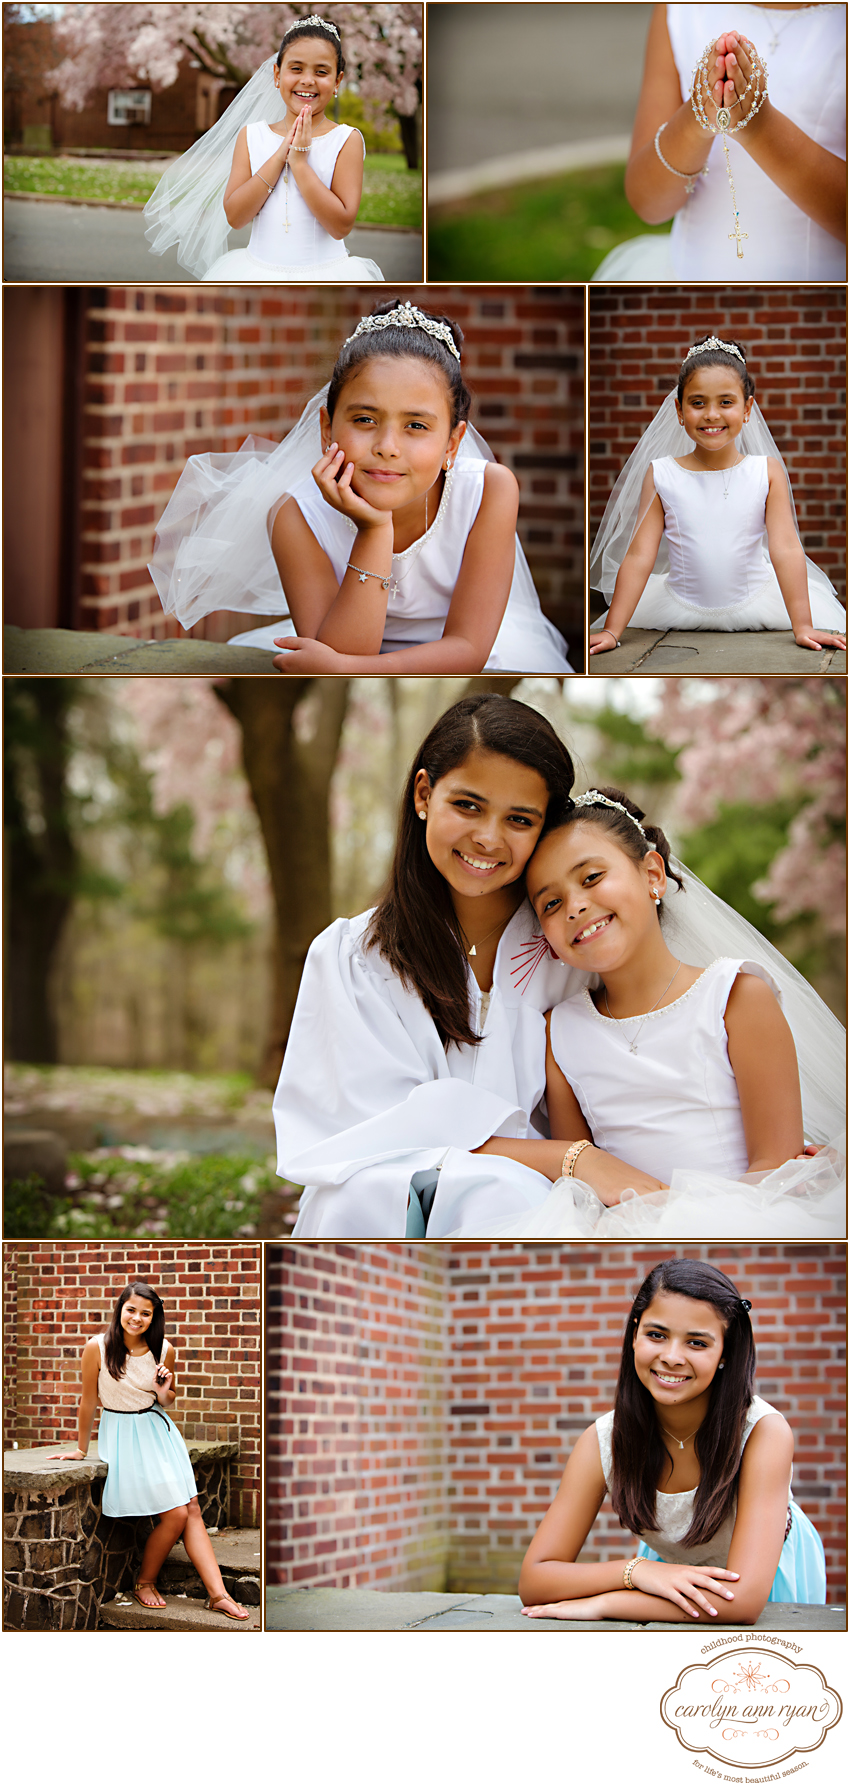 New Jersey Photographer Carolyn Ann Ryan photographs sweet girls for their Communion Day